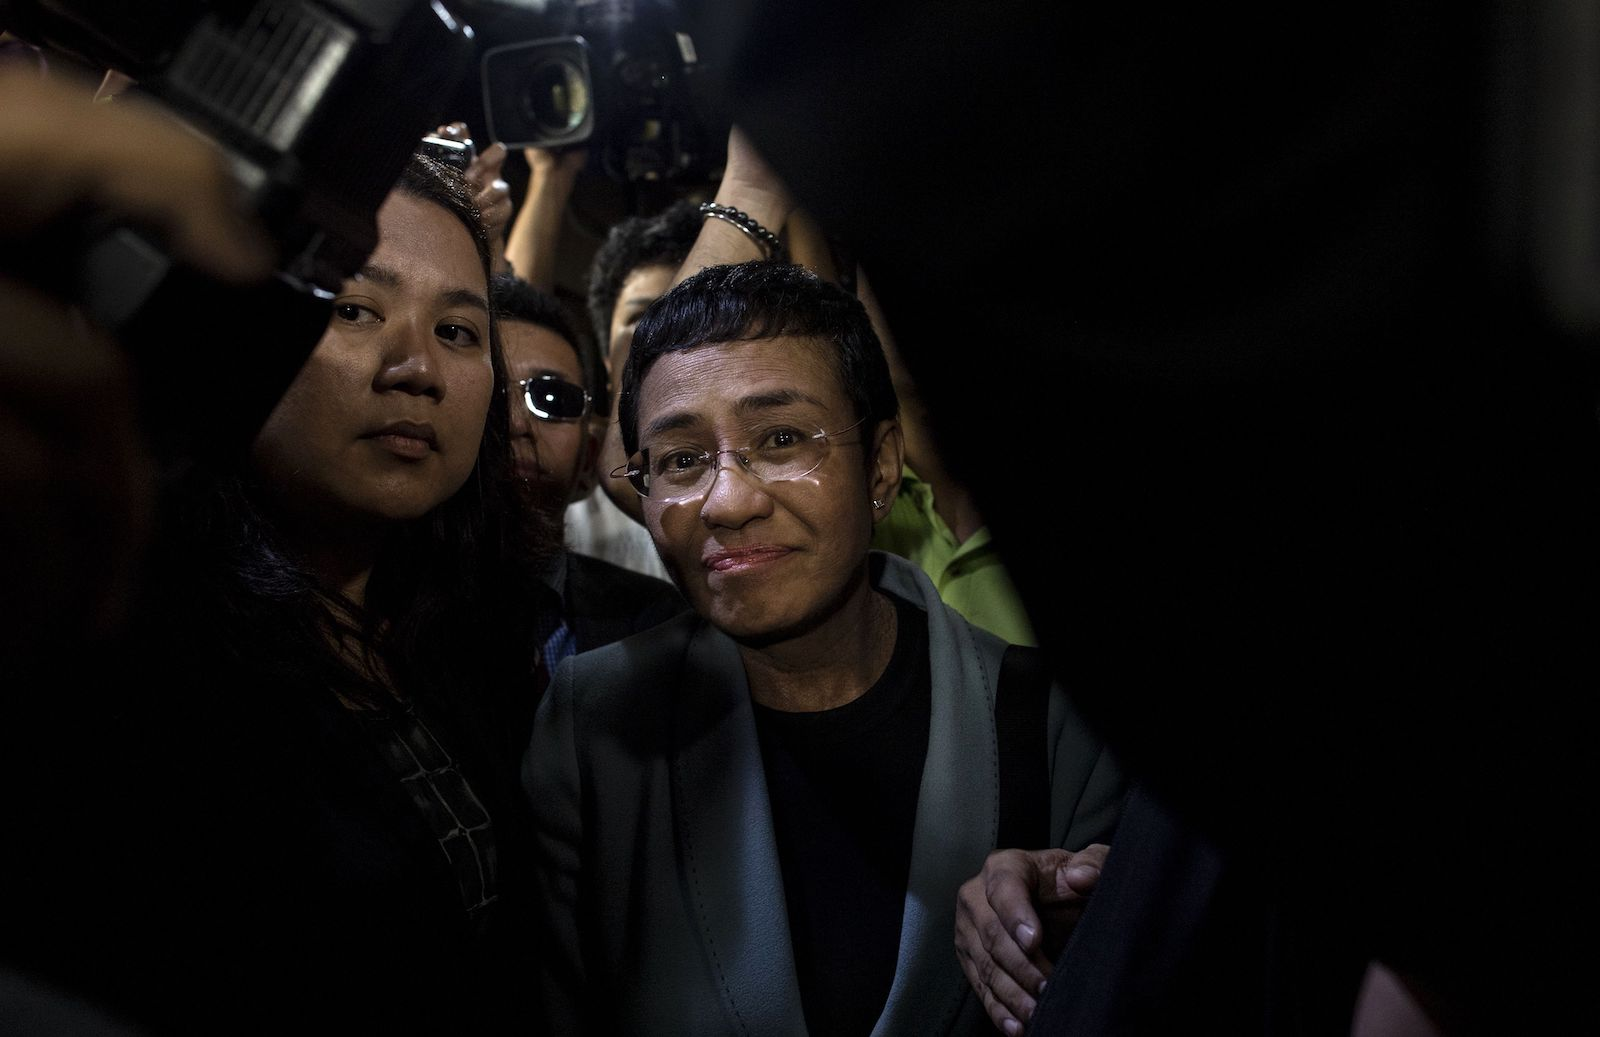 Philippine journalist Maria Ressa (centre) arrives at a regional trial court in Manila to post bail in February 2019 (Noel Celis/AFP via Getty Images)